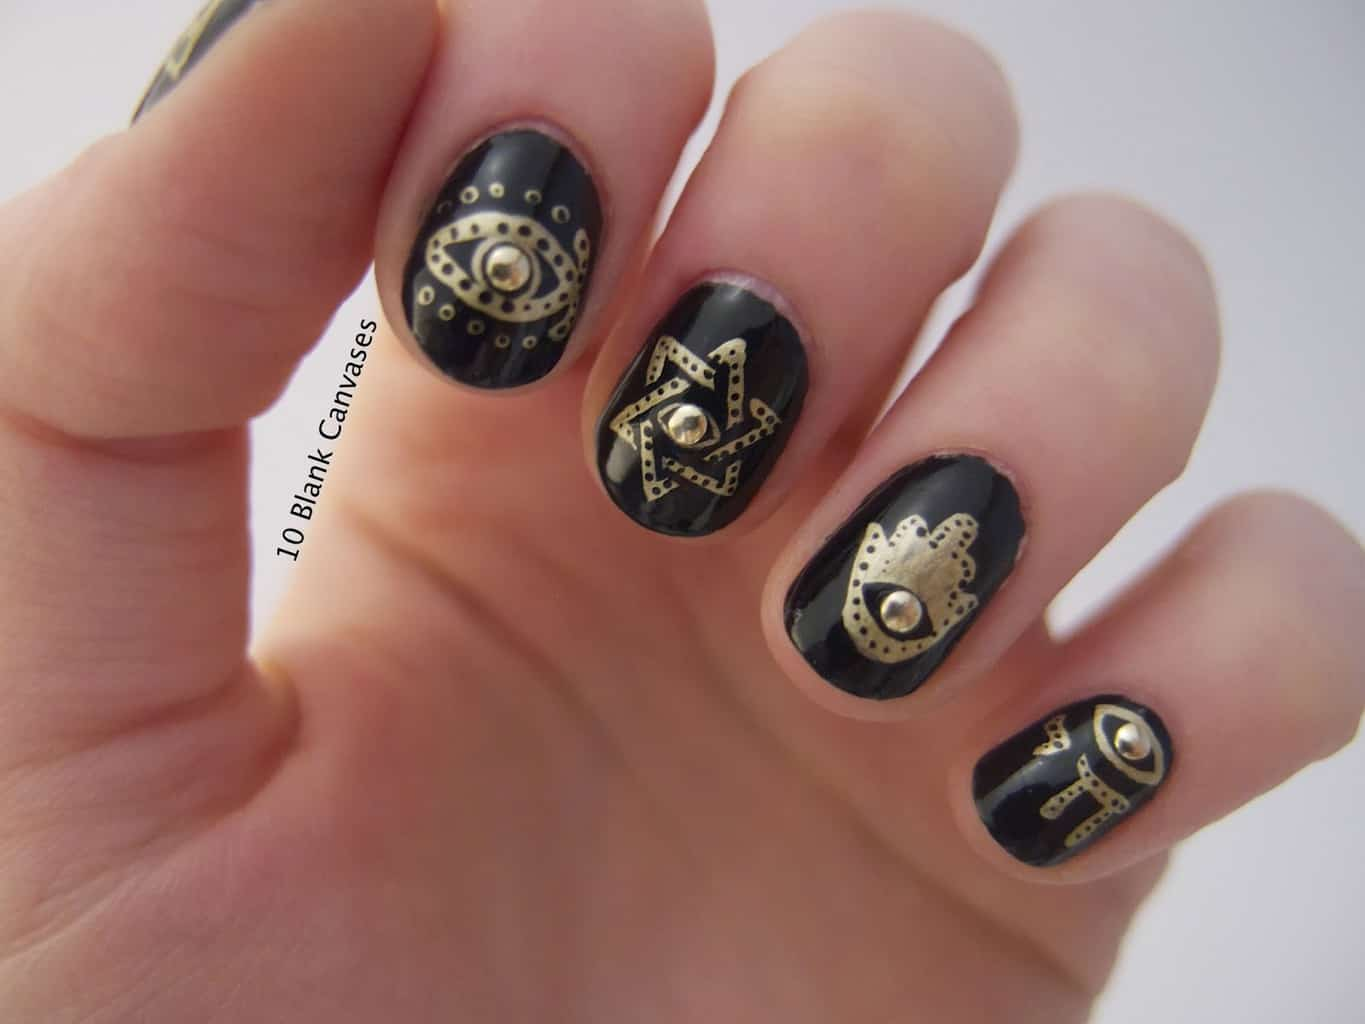 Illuminati Designs on Round Nail